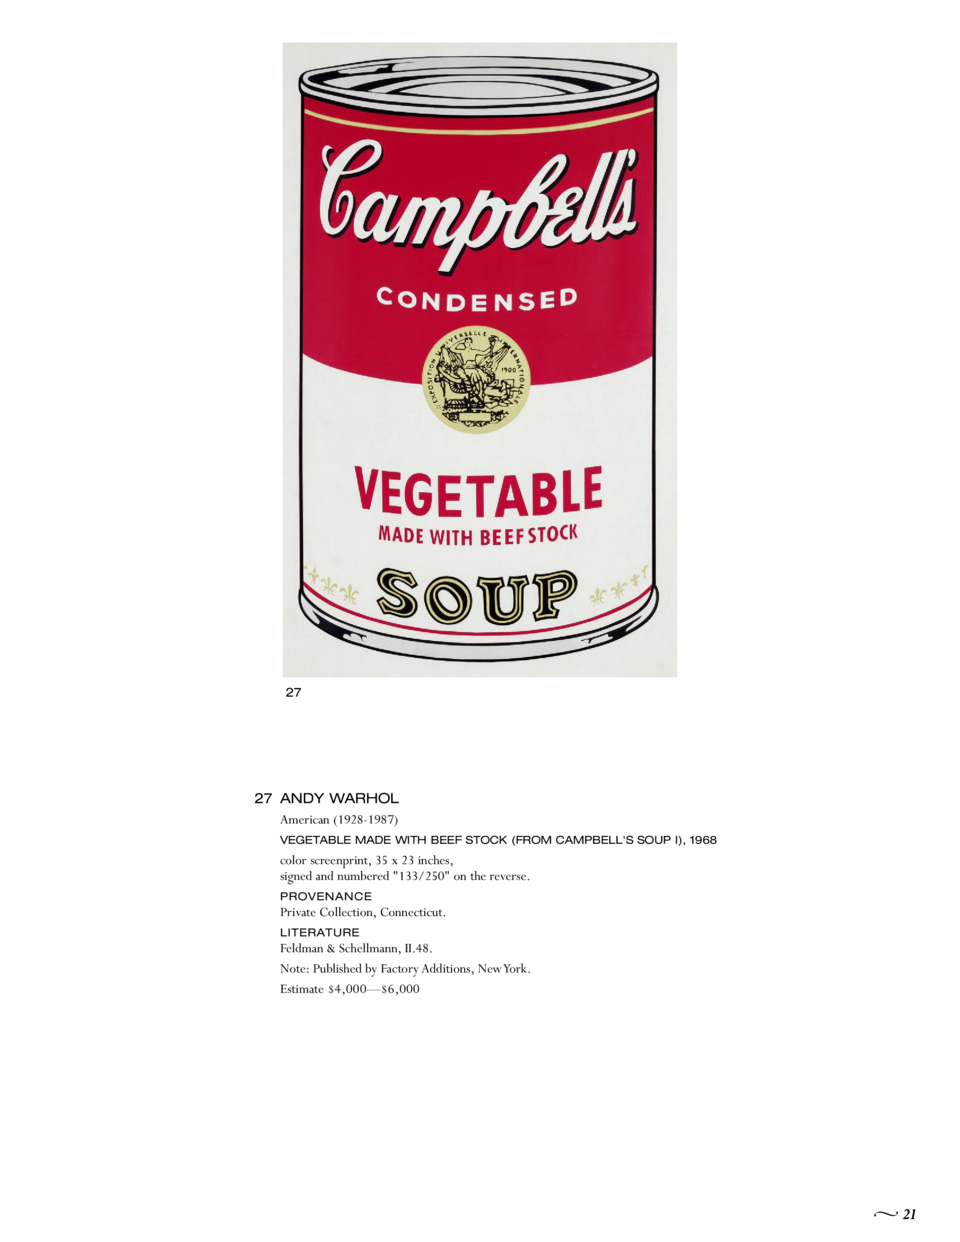 27  27 ANDY WARHOL American  1928-1987  VEGETABLE MADE WITH BEEF STOCK  FROM CAMPBELL S SOUP I , 1968  color screenprint, ...